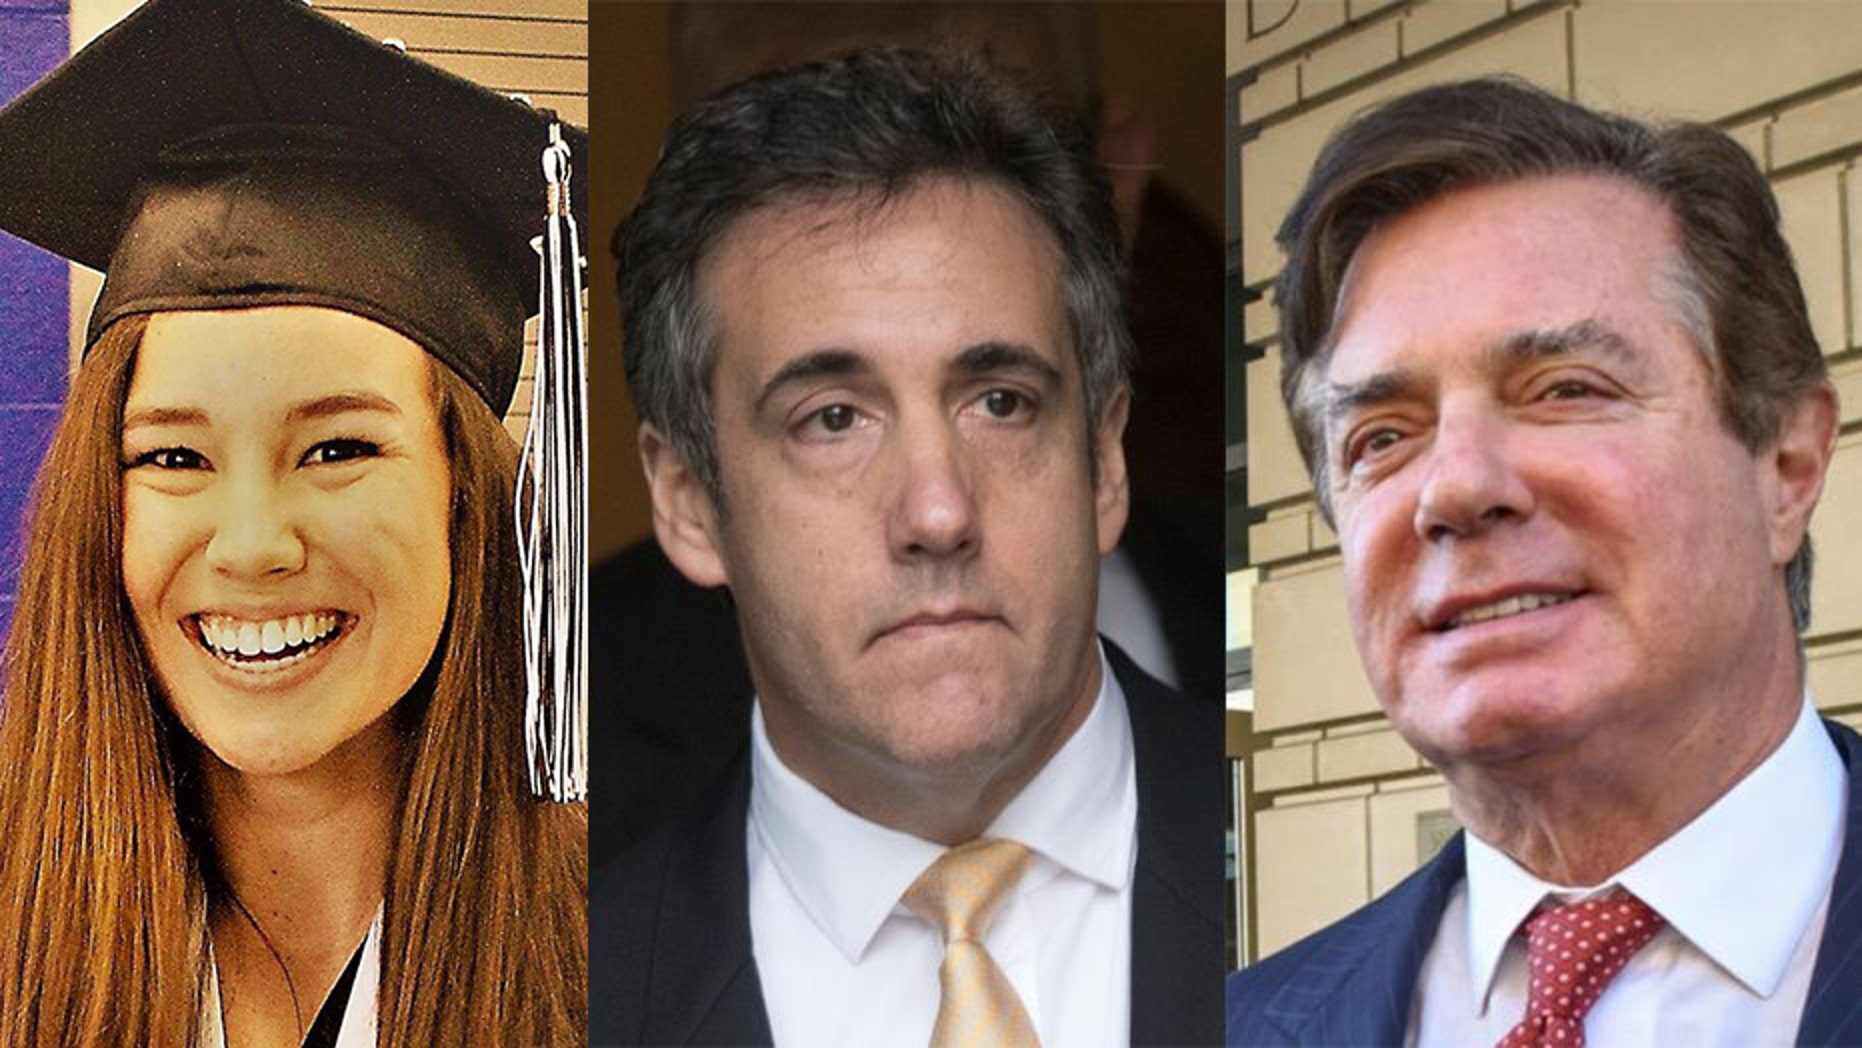 Former House Speaker Newt Gingrich says the murder of Iowa student Mollie Tibbetts (left) is more important than the convictions of Trump associates Michael Cohen (middle) and Paul Manafort (right).